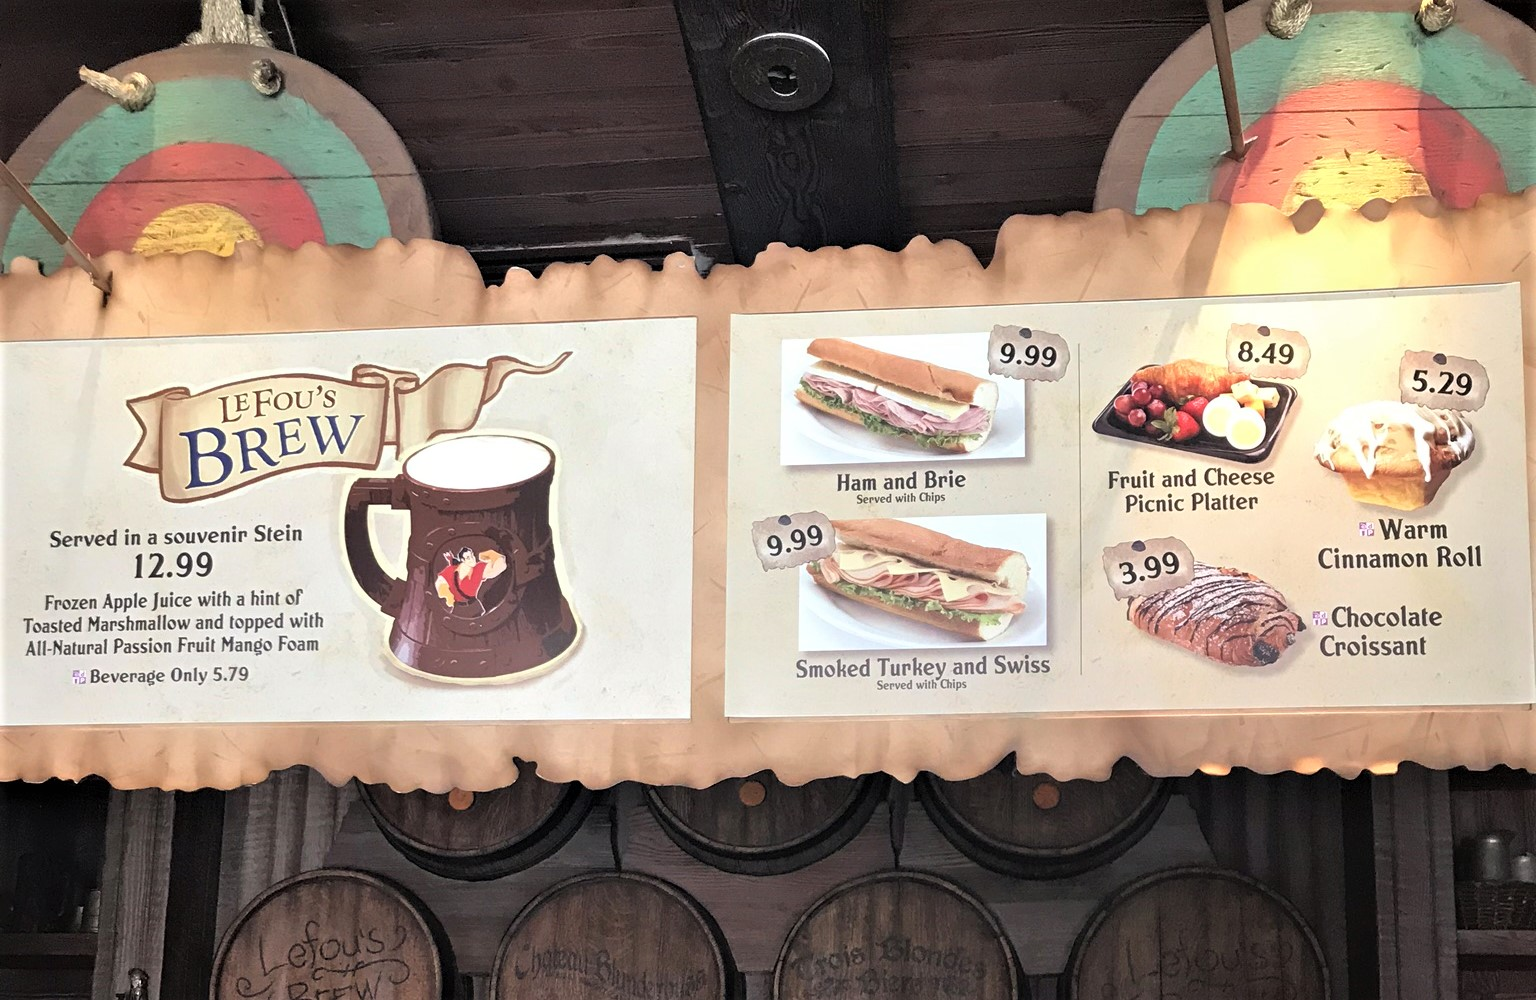 gaston's tavern menu sign